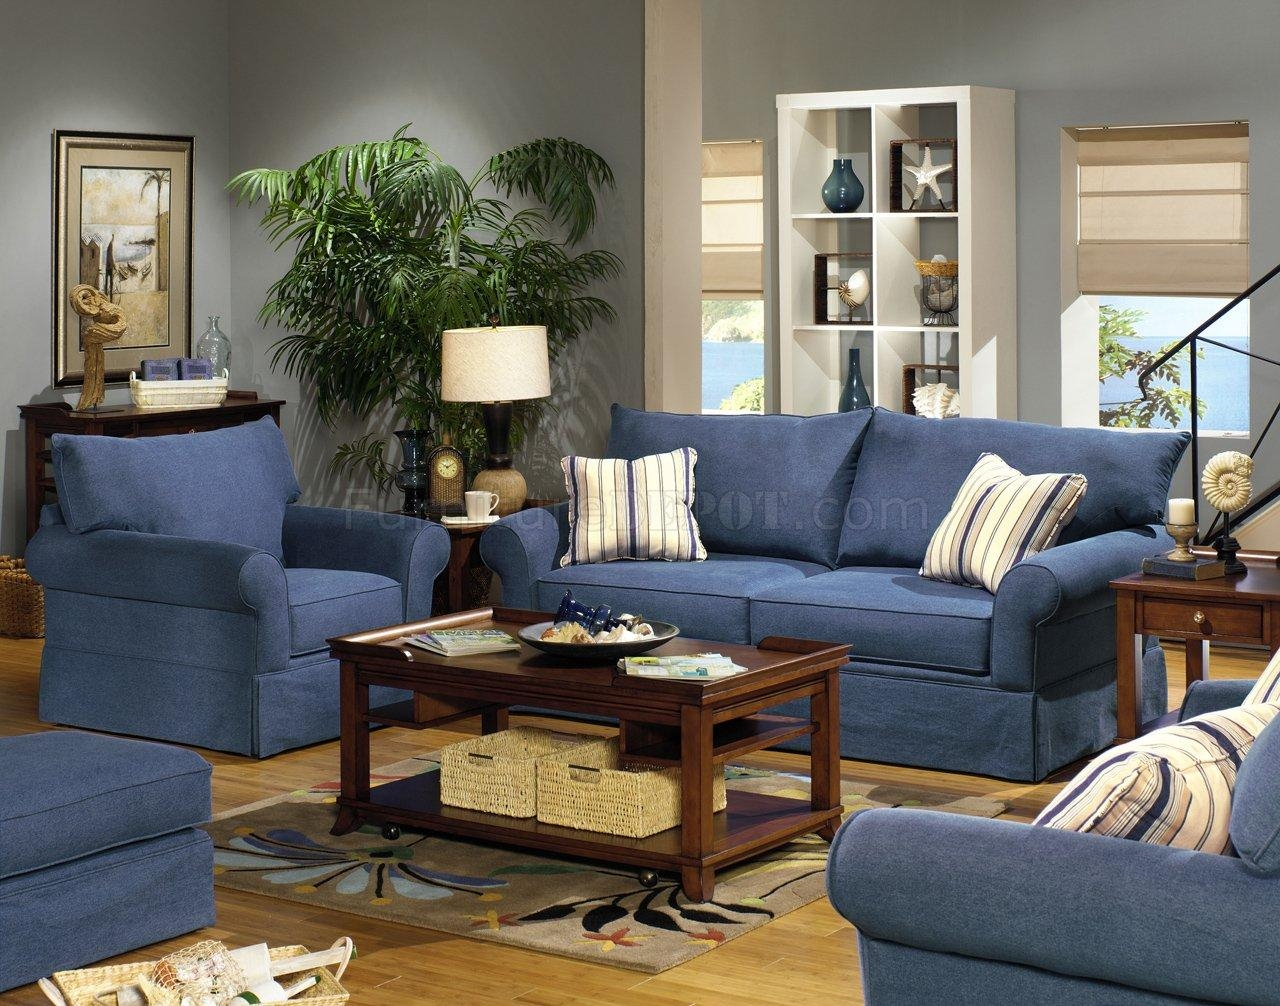 12 Ideas Of Denim Sofas And Loveseats Sofa Ideas